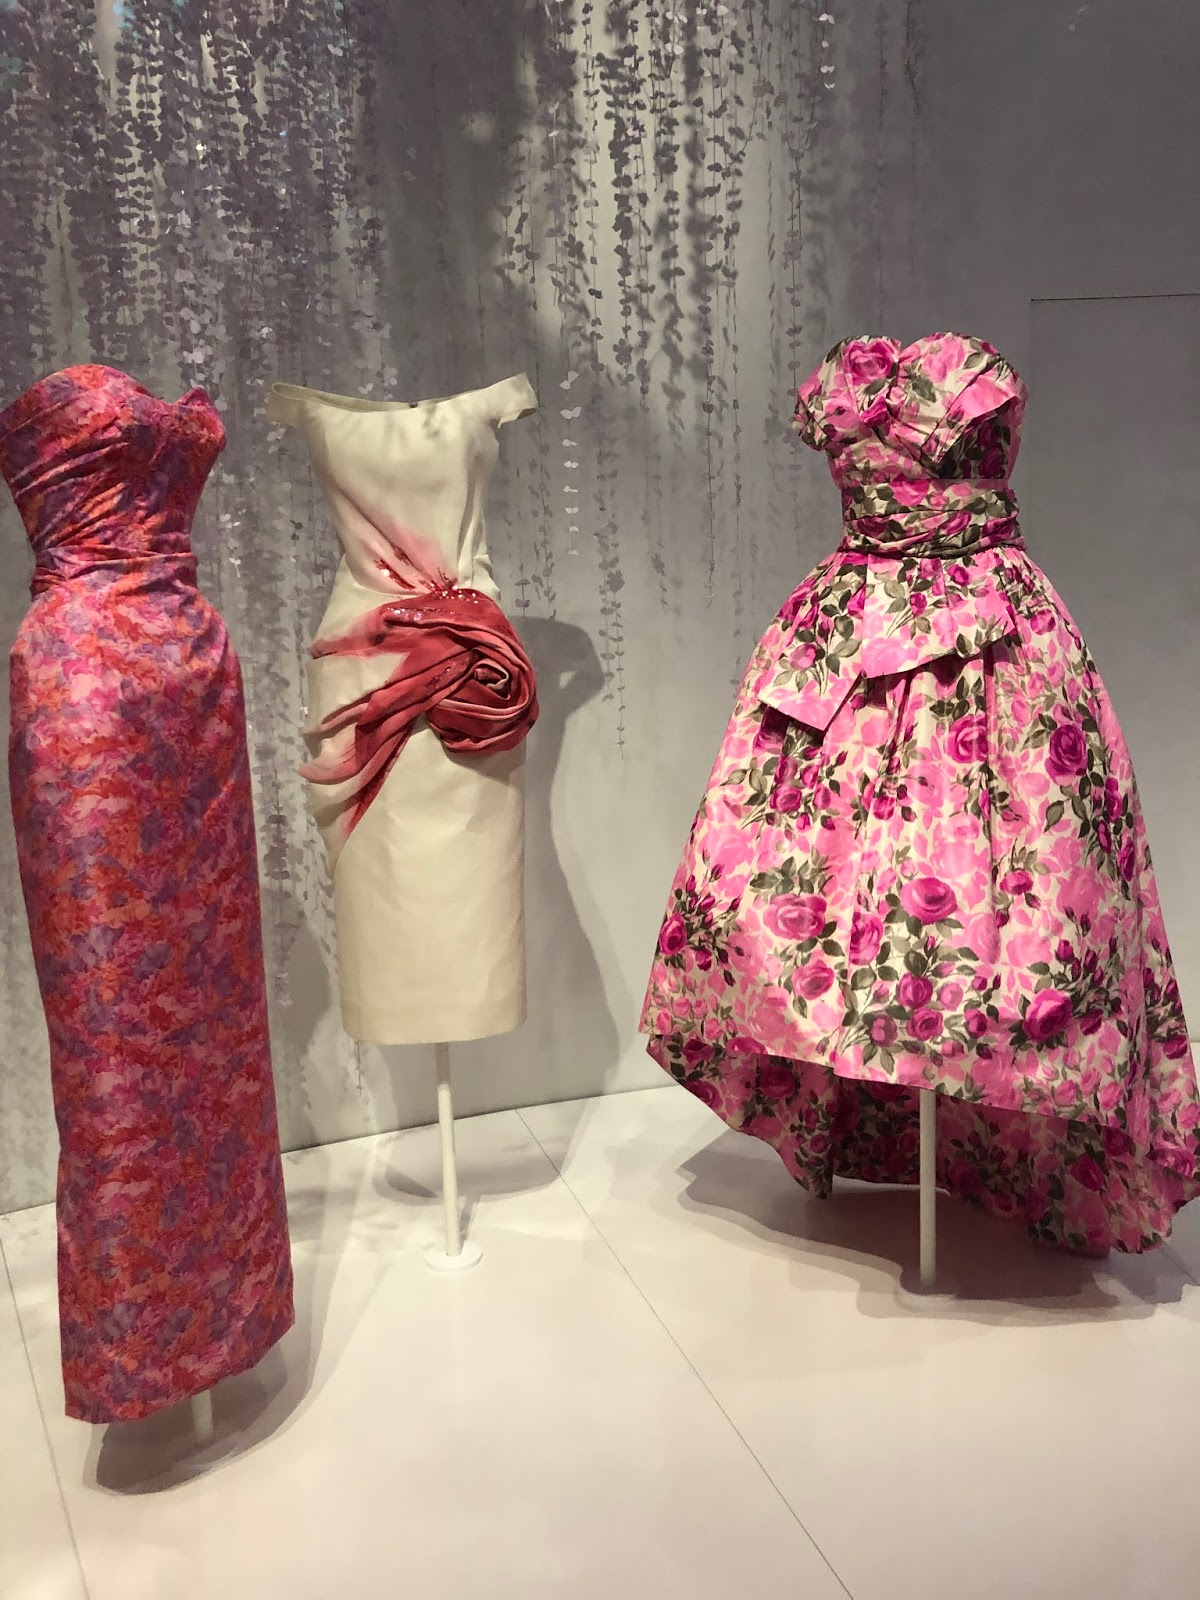 christian dior exhibition v and a floral dresses